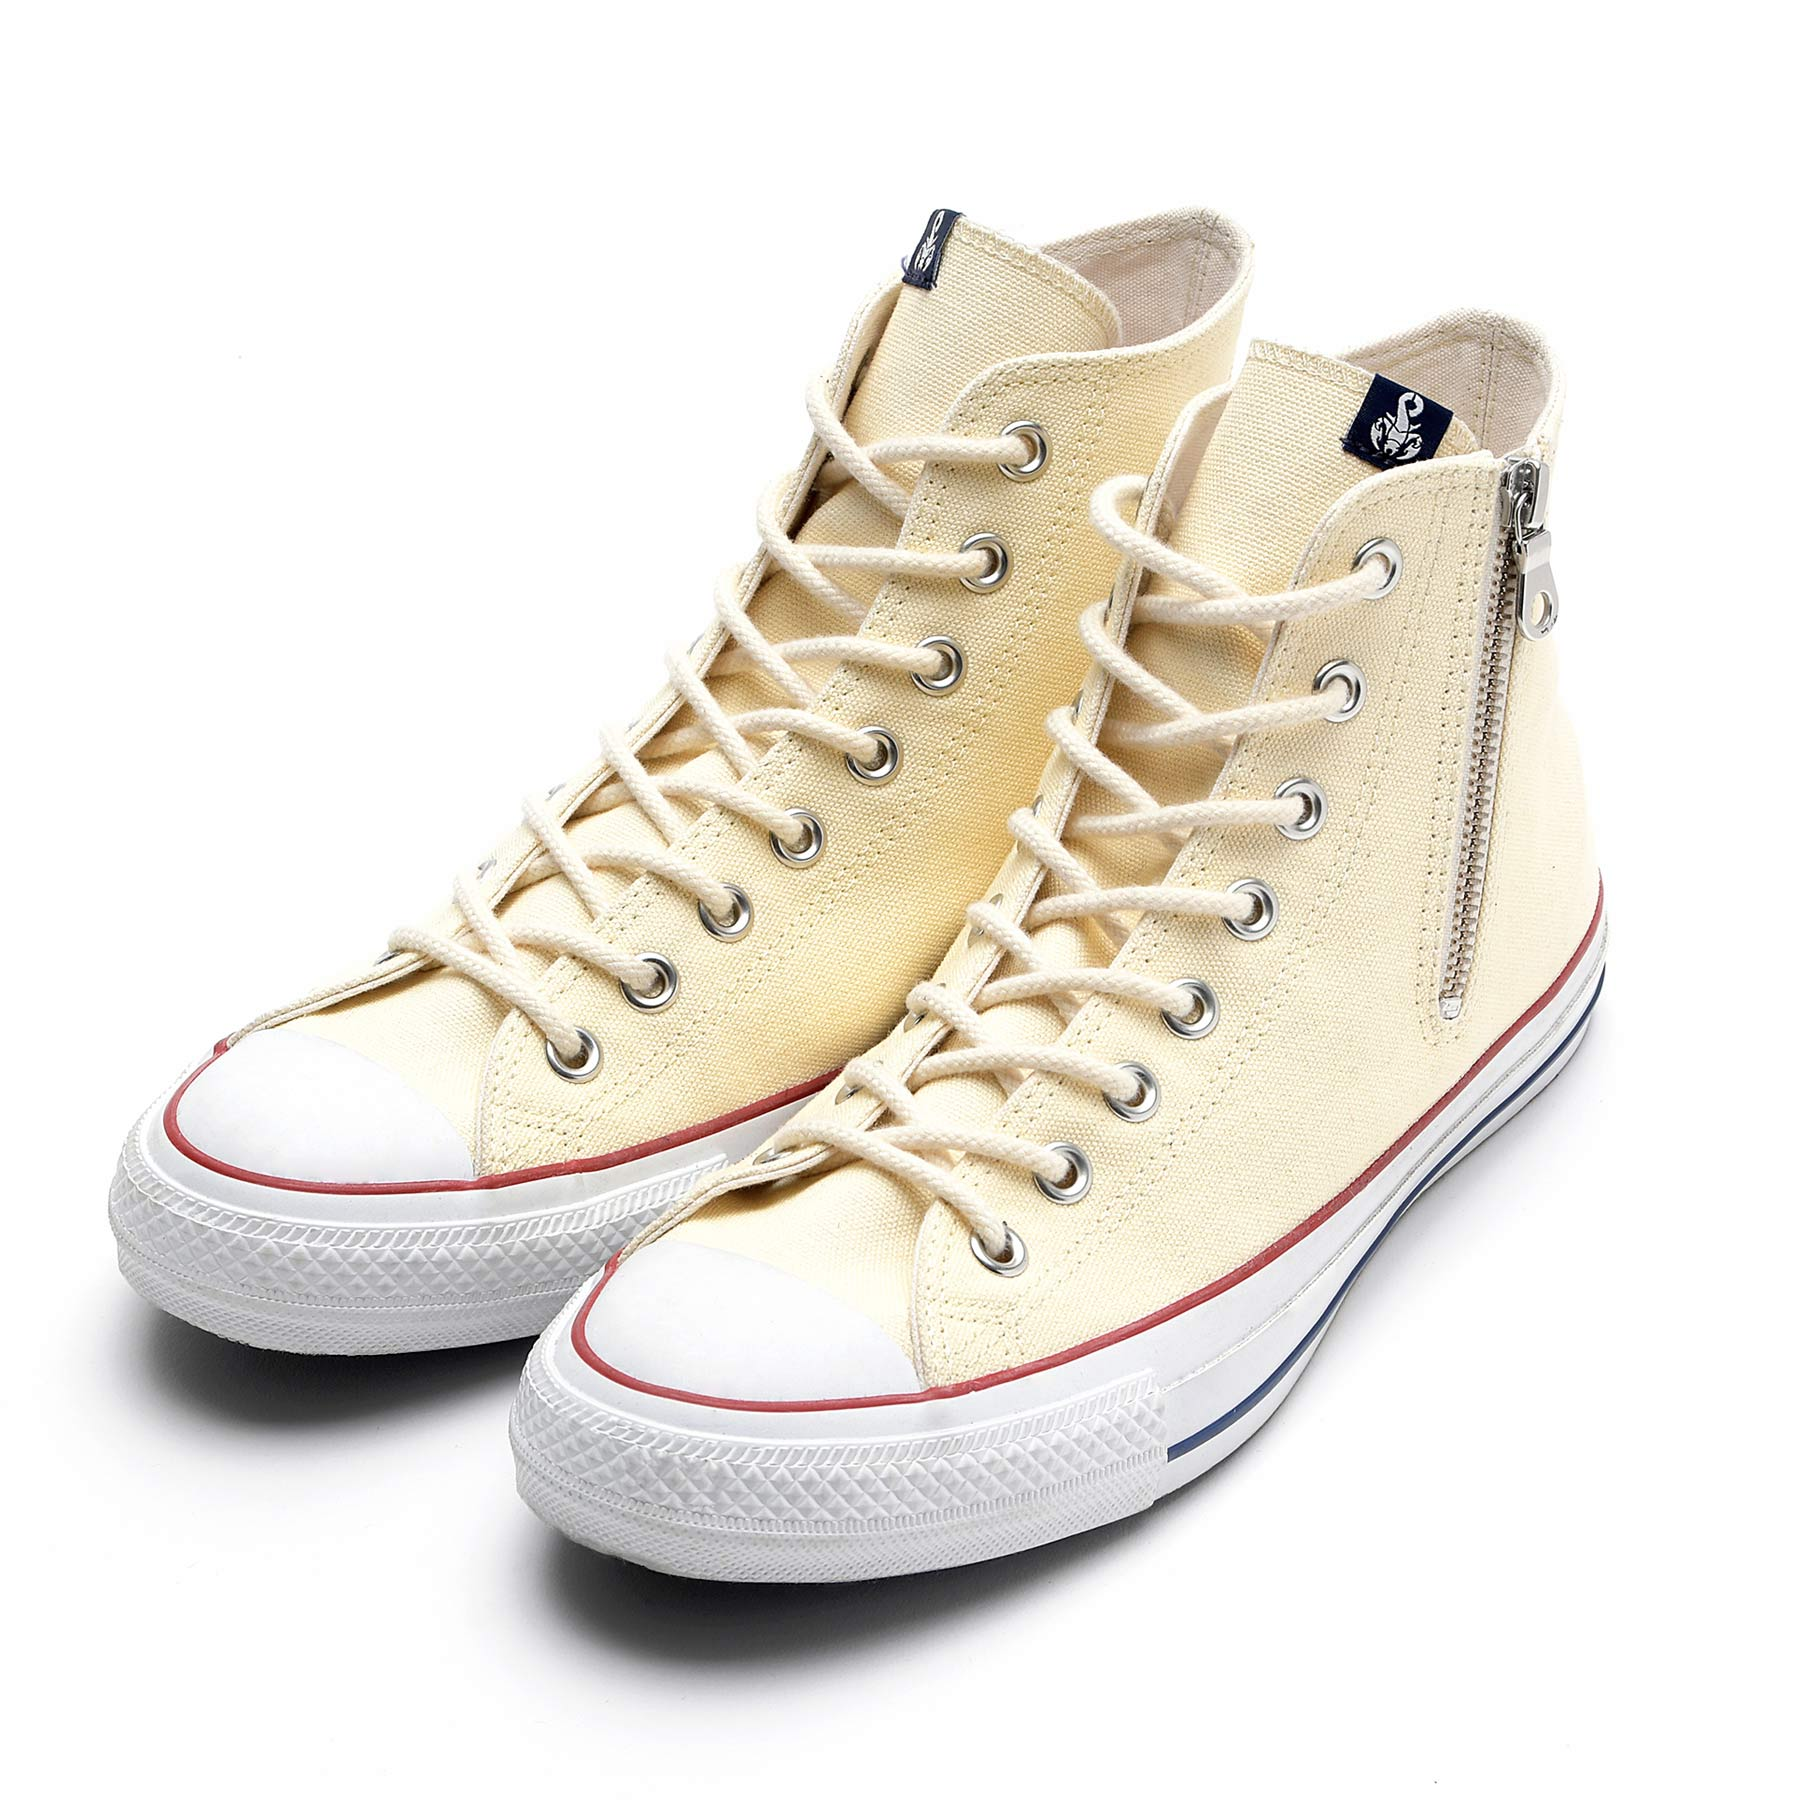 SOPHNET. / CONVERSE ALL STAR HI ZIP UP